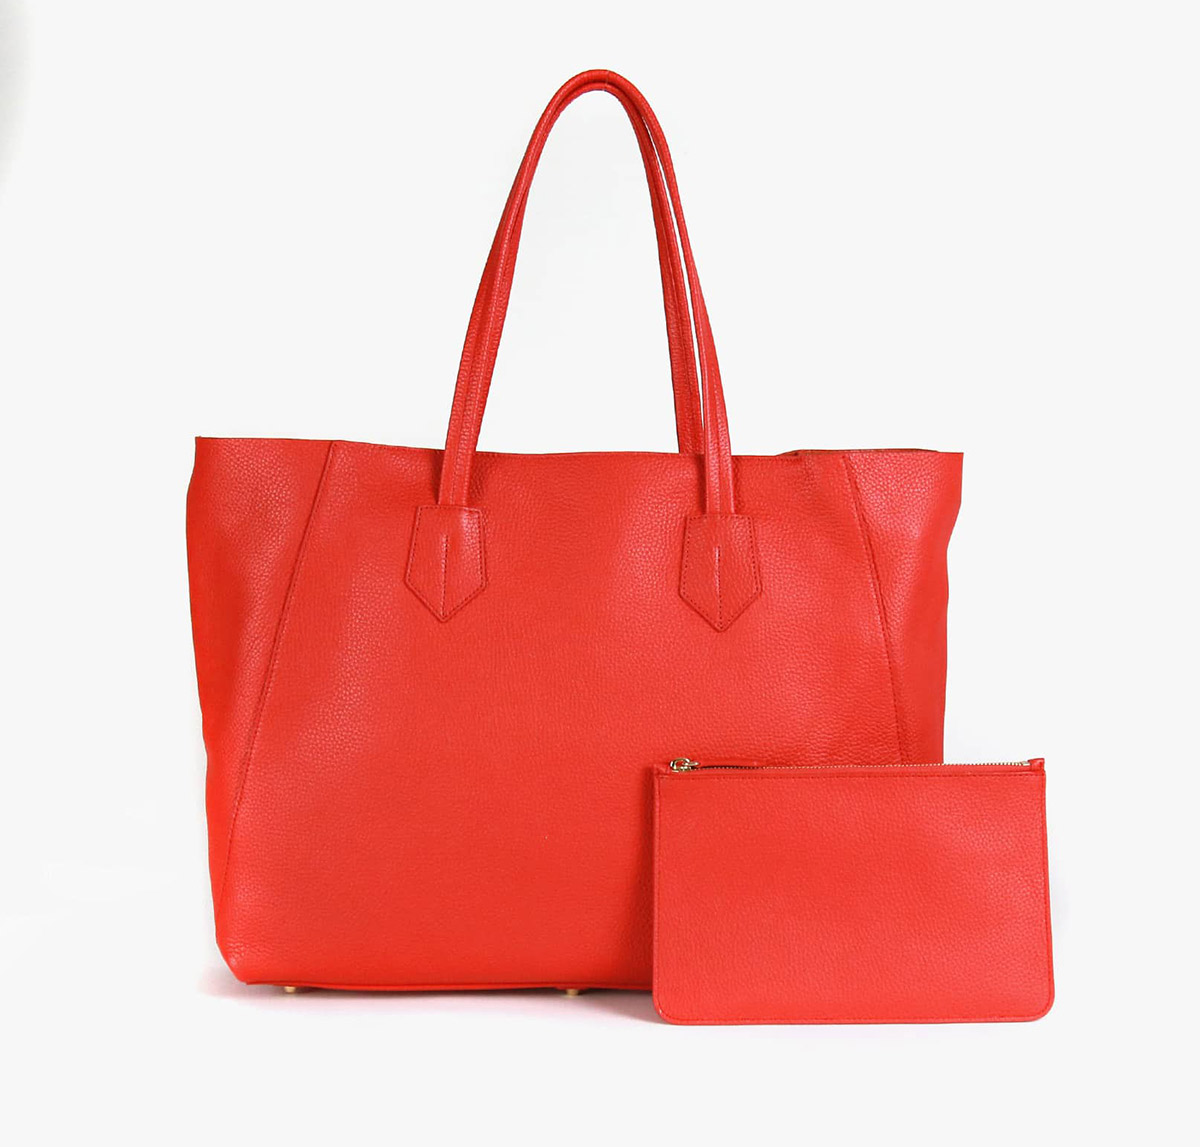 neely and chloe no. 2 Large Tote scarlet front view with zip pouch